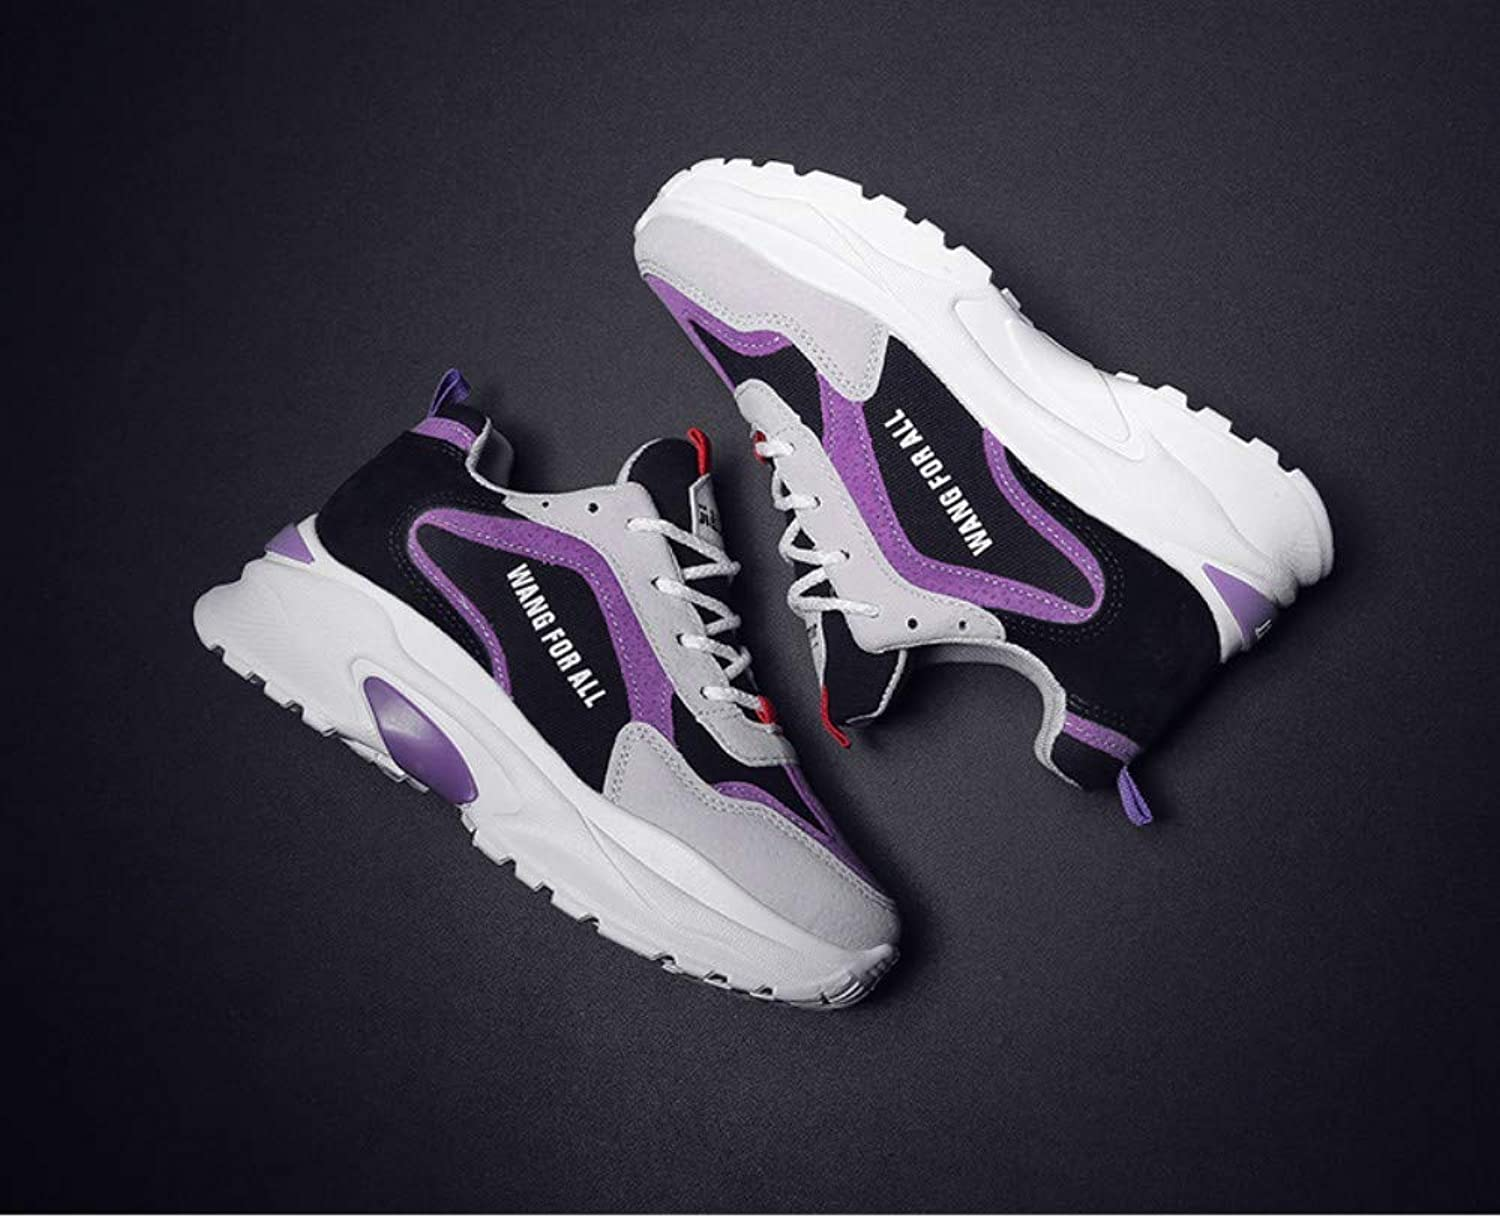 ZHIJINLI Sports shoes small white shoes single shoes training shoes casual shoes fitness shoes mesh lightweight safety shoes, 36EU